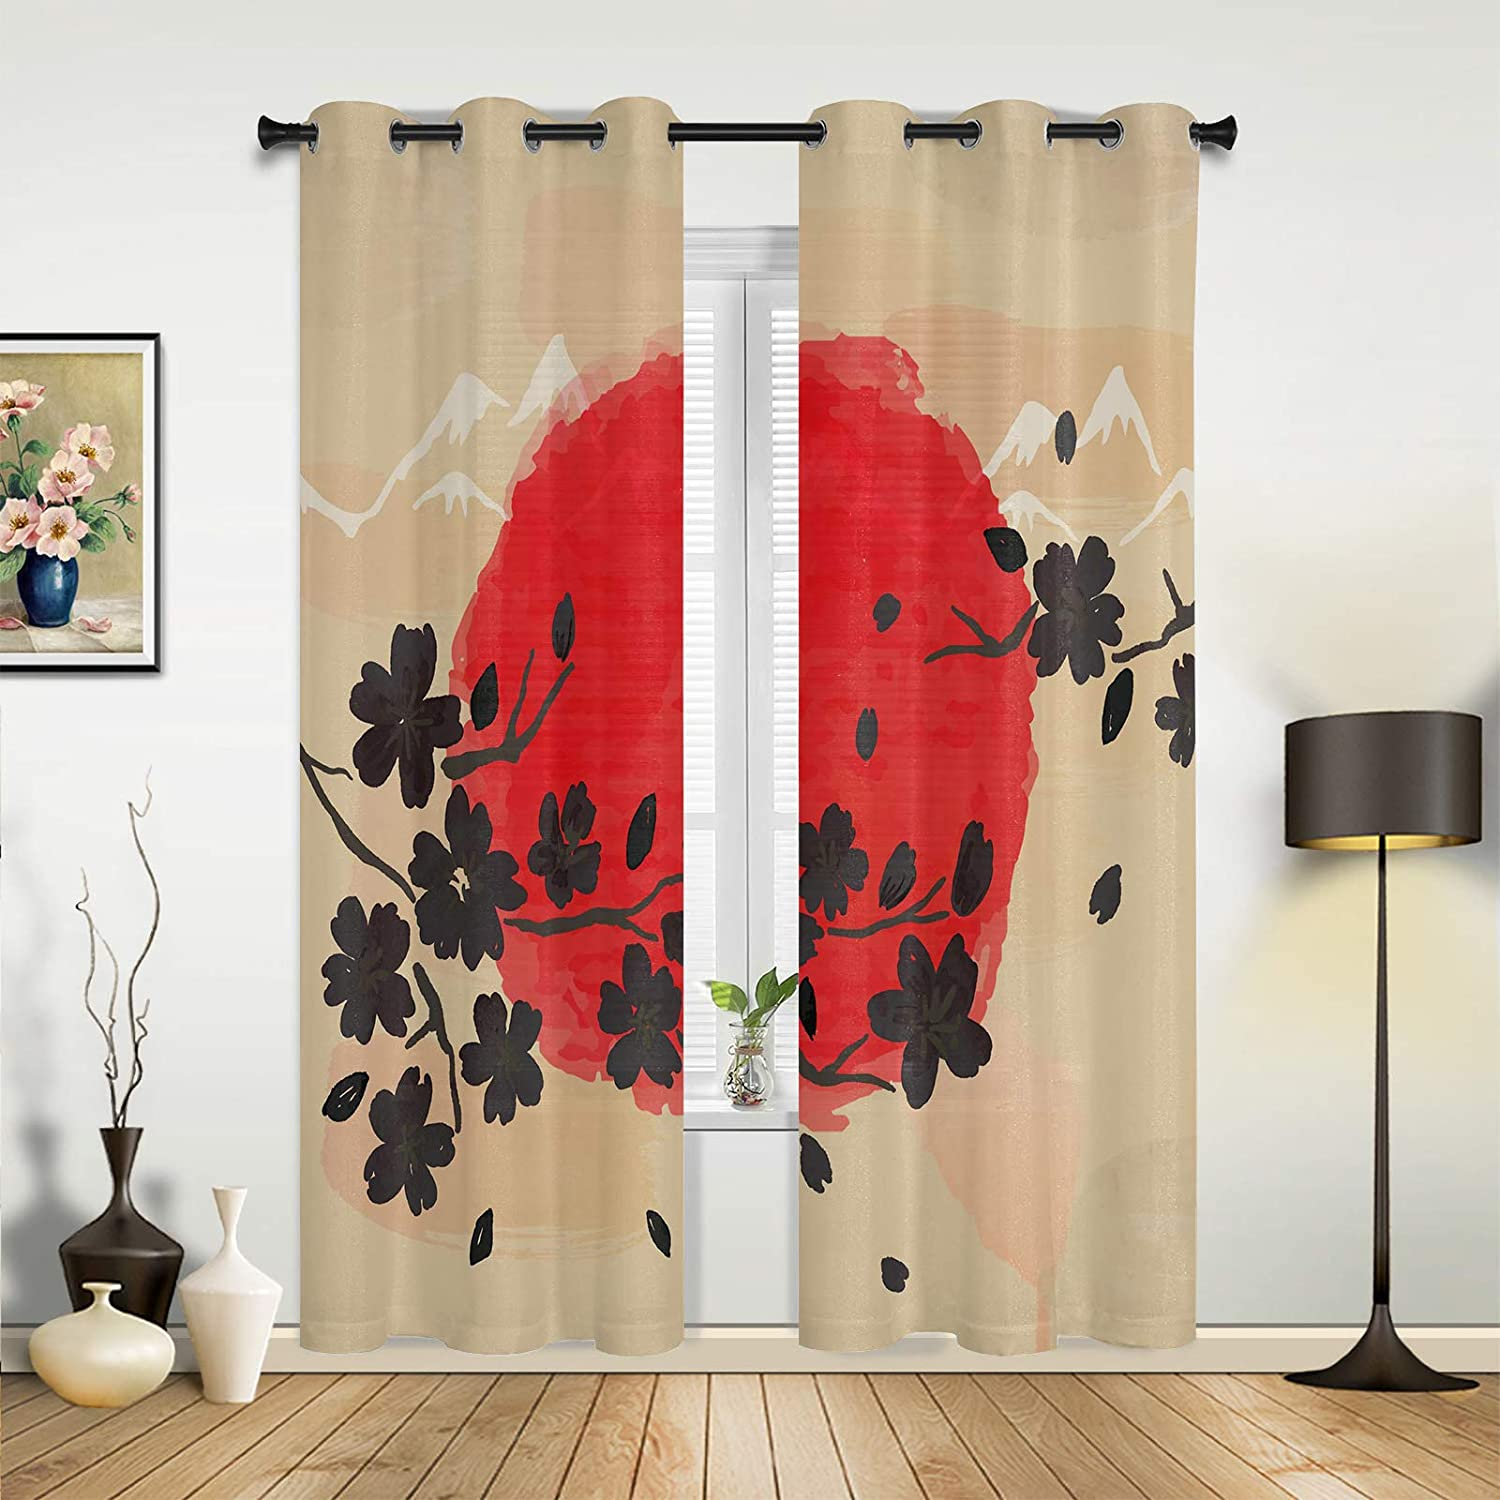 Beauty Decor Window Easy-to-use Sheer Curtains Sprin Living Bedroom for Room Super special price